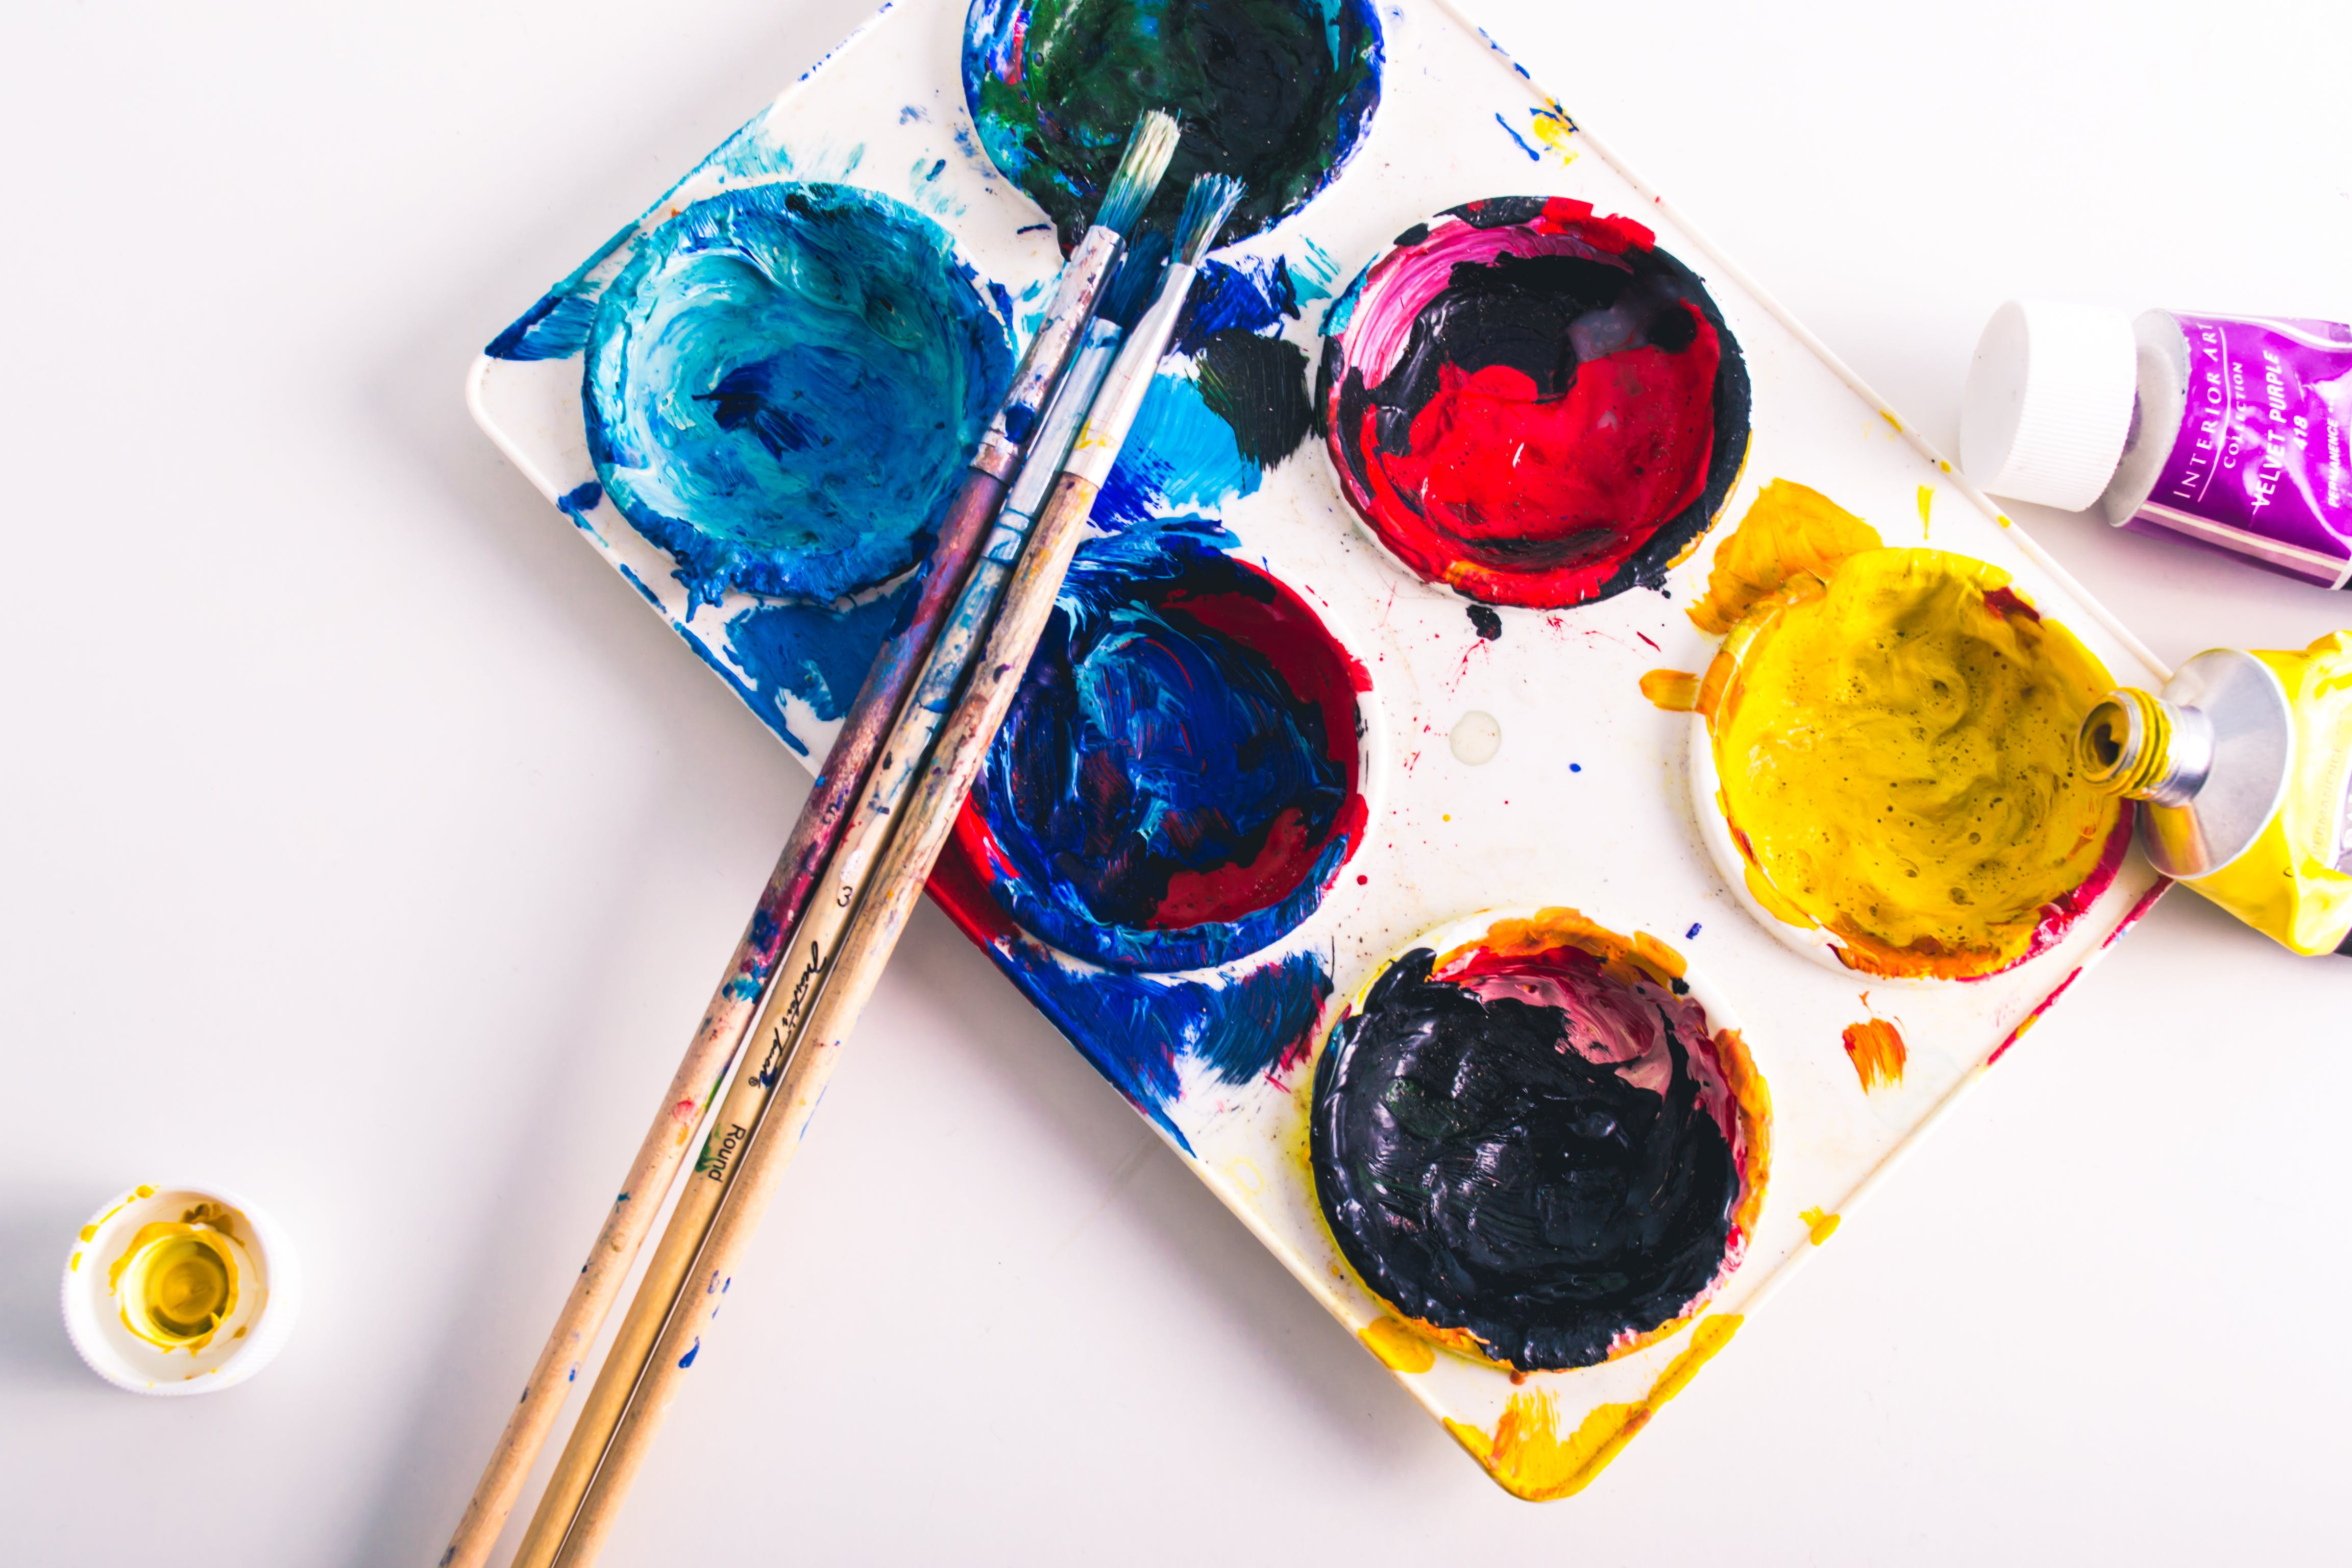 Free stock photo of art, colors, brushes, palette